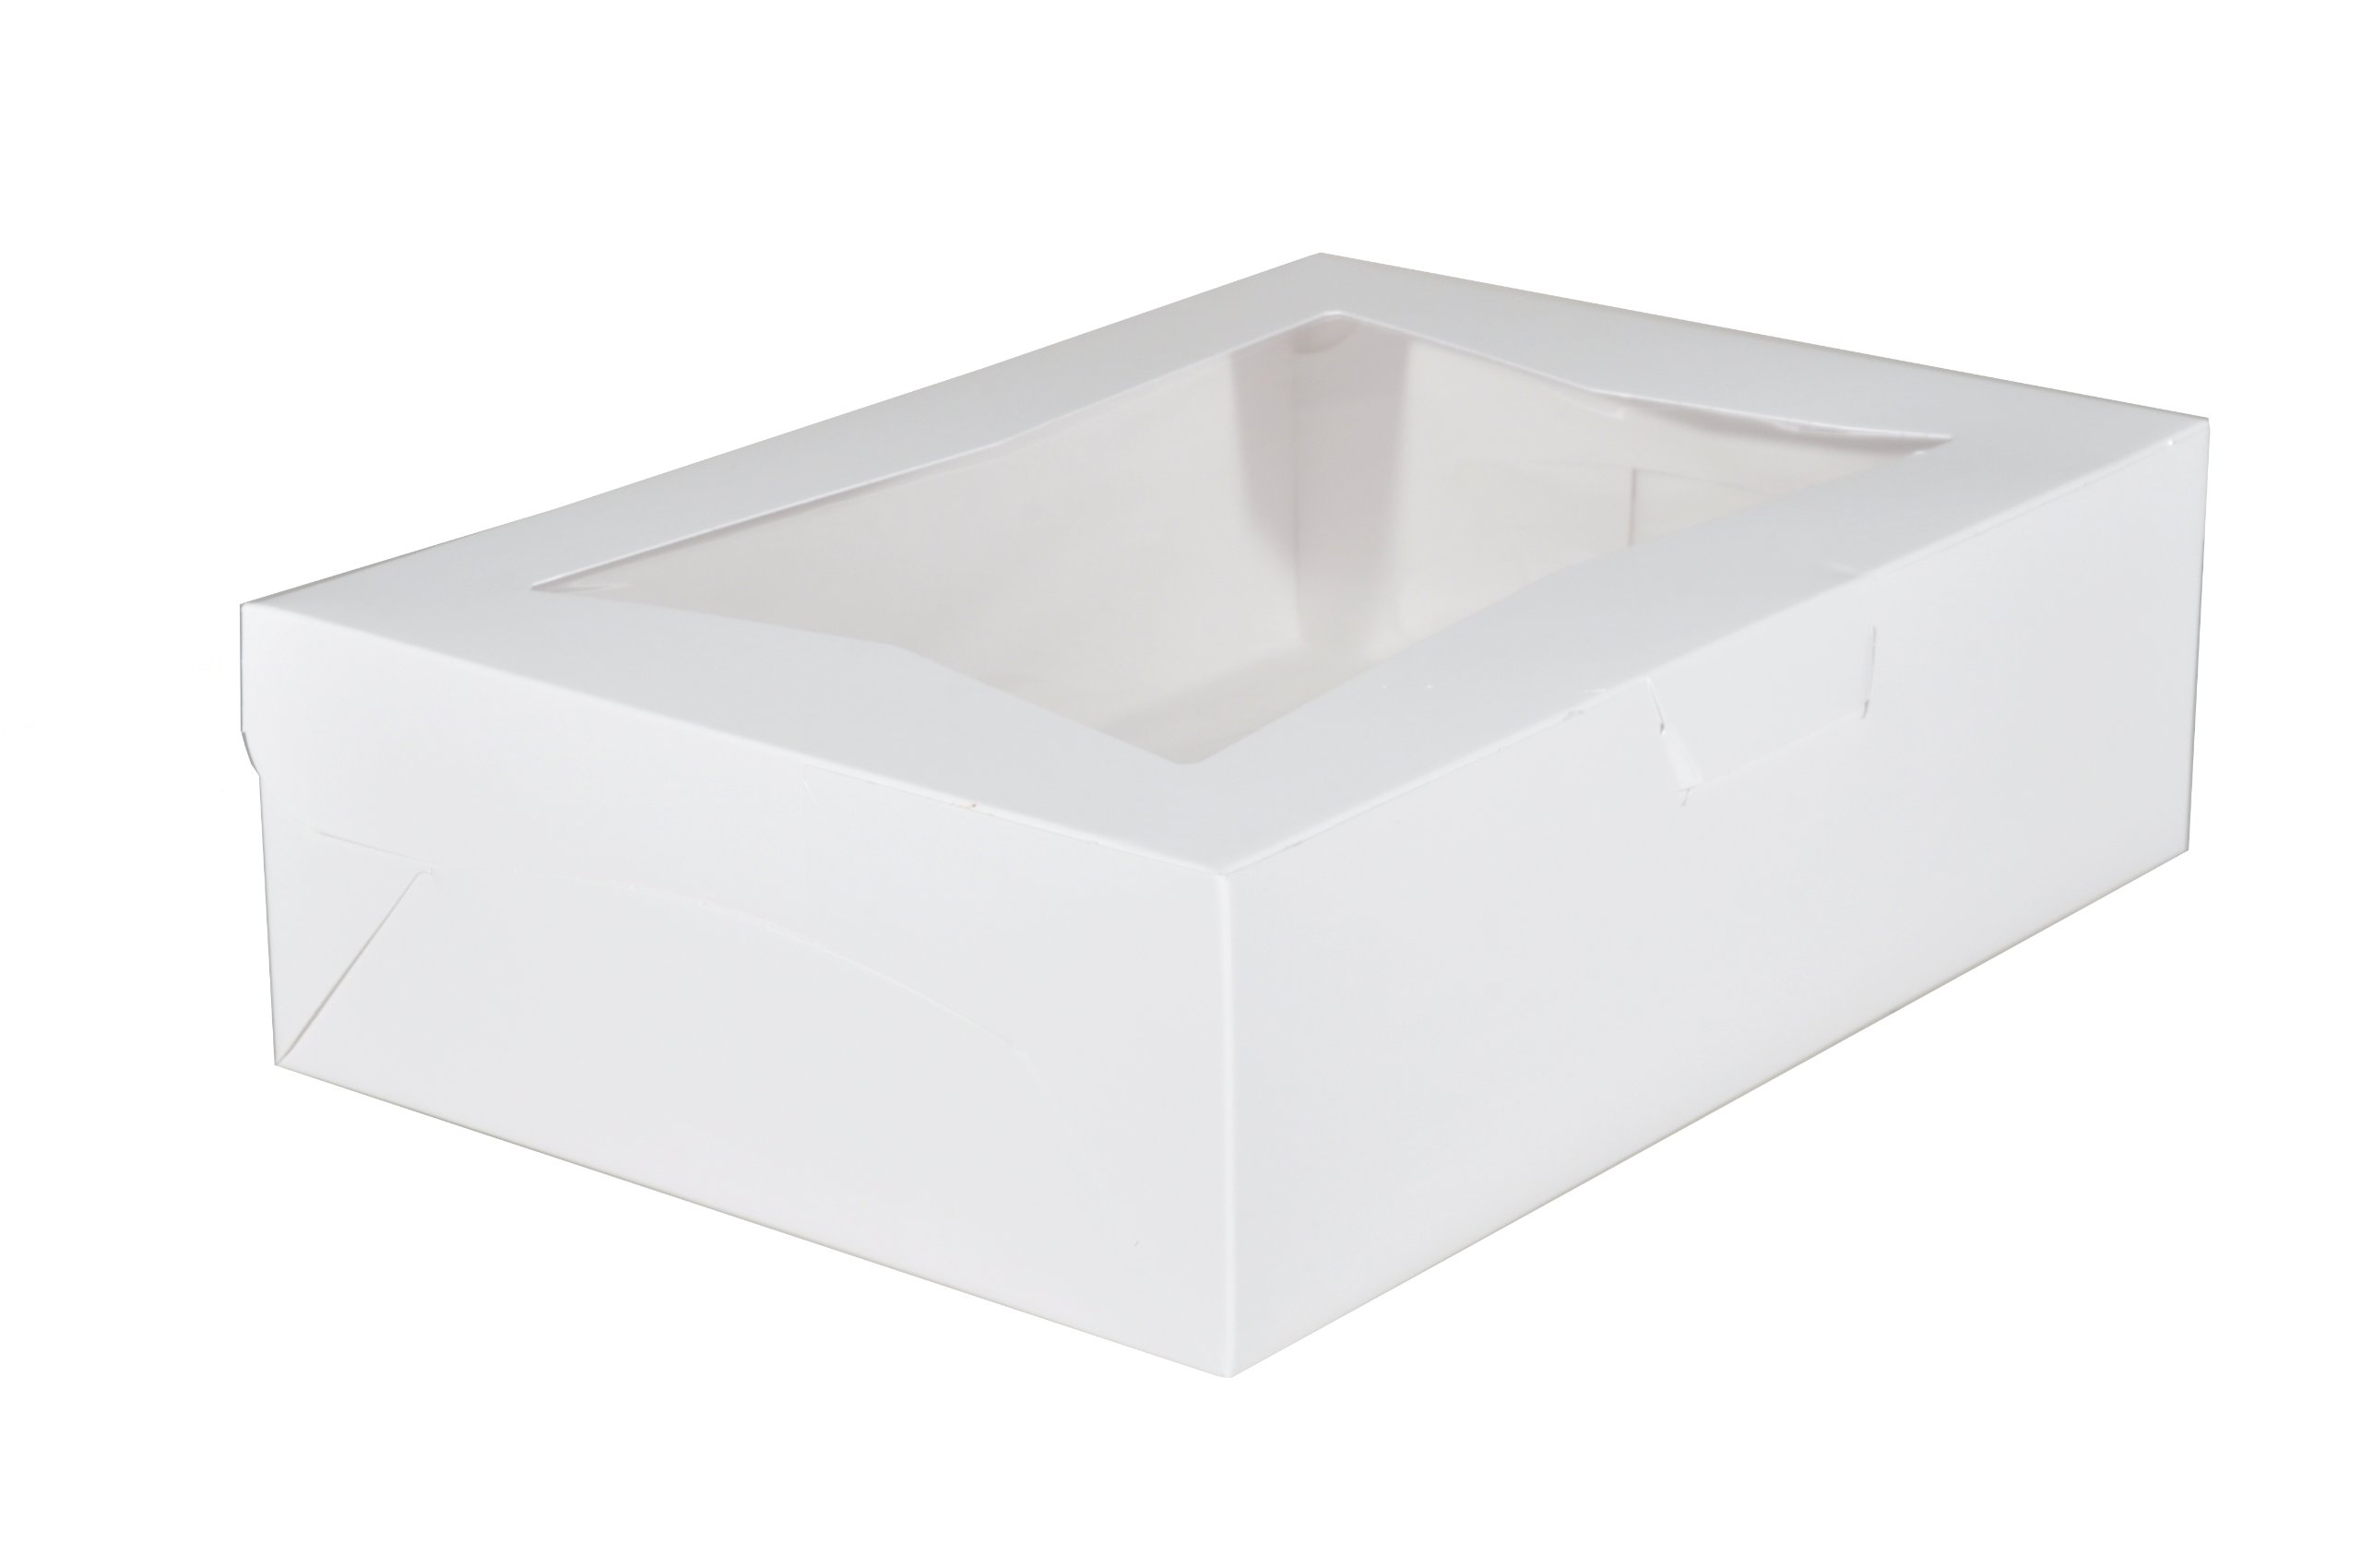 Southern Champion Tray 23093 Paperboard White Lock Corner Window Bakery Box, 14'' Length x 10'' Width x 4'' Height (Case of 100)